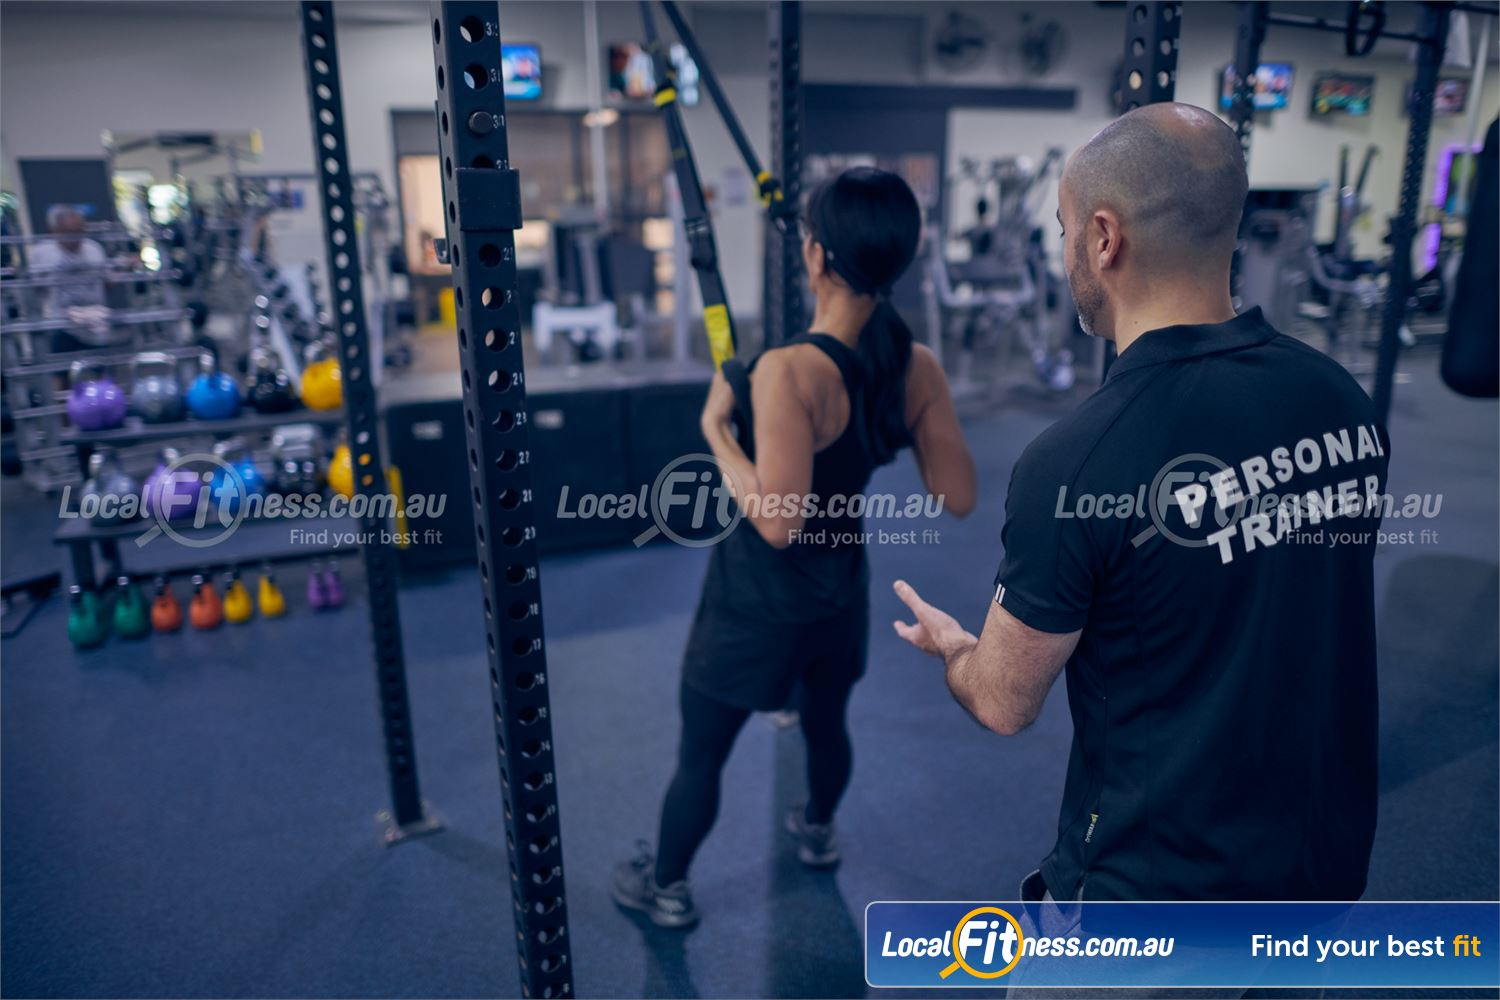 Maribyrnong Aquatic Centre Near Essendon Work your core and your stabilizers with TRX training in Maribyrnong.